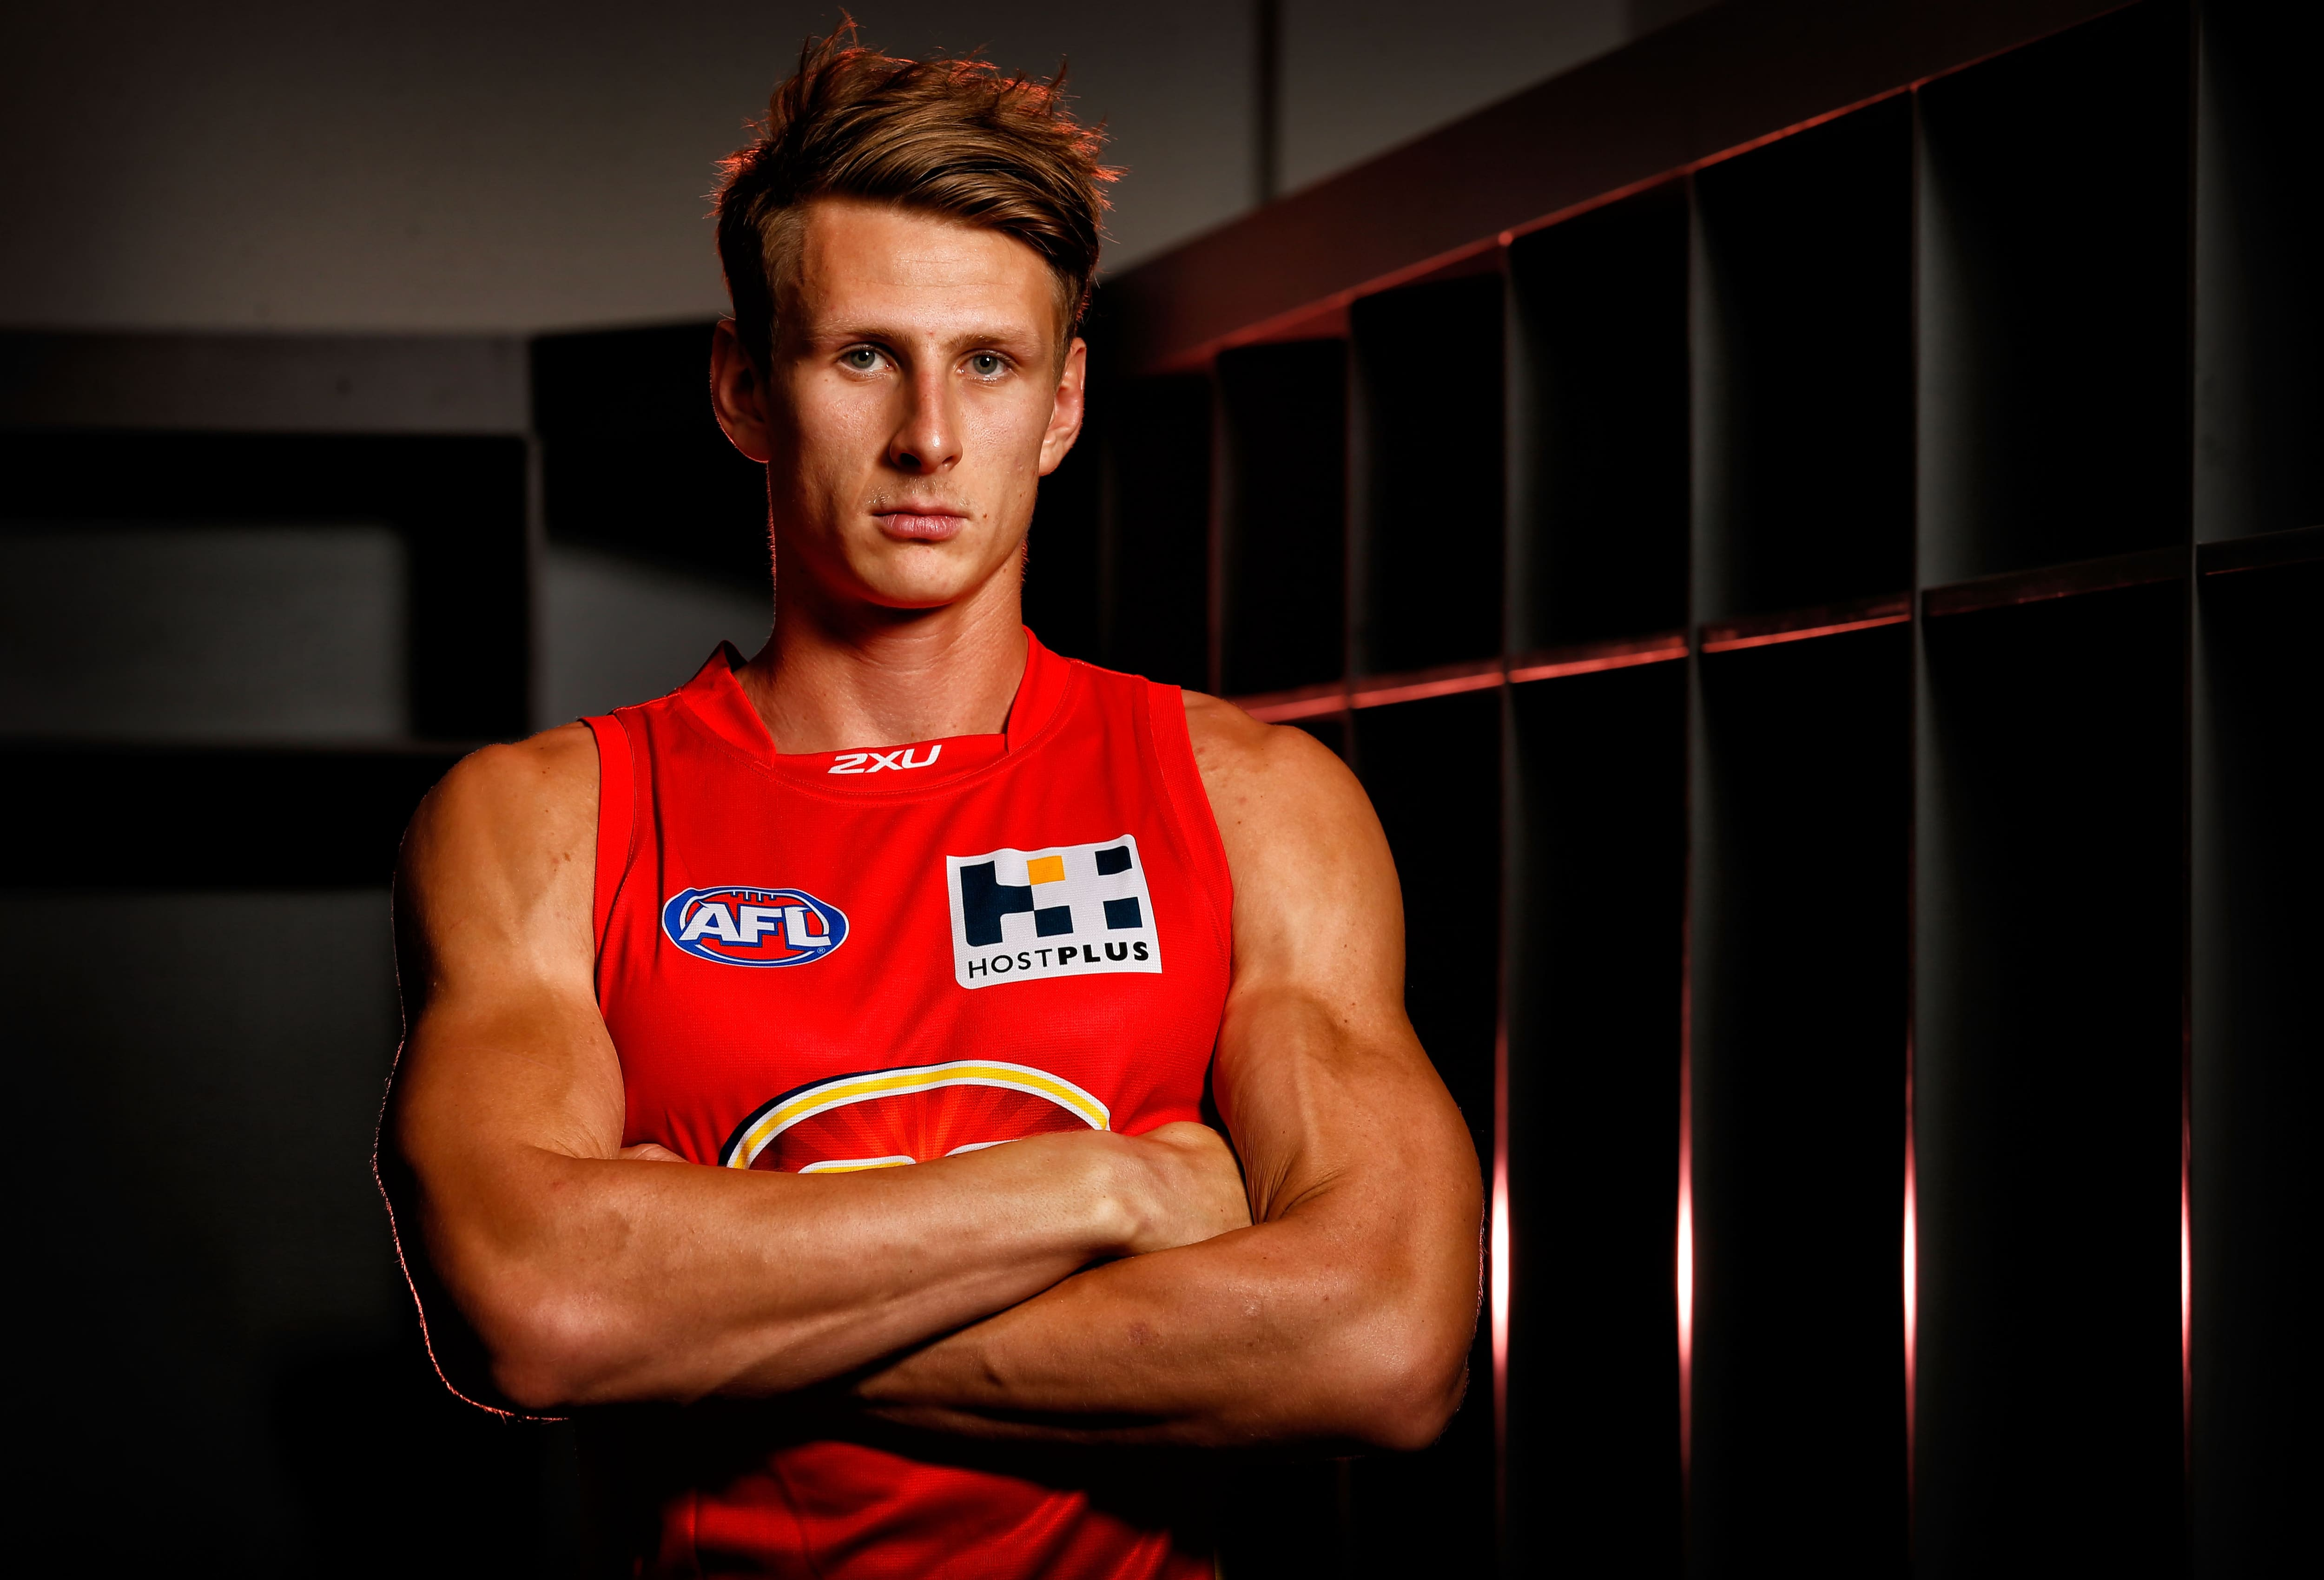 Donate To Charity >> Daniel Gorringe to stay with Gold Coast SUNS in 2015 - goldcoastfc.com.au